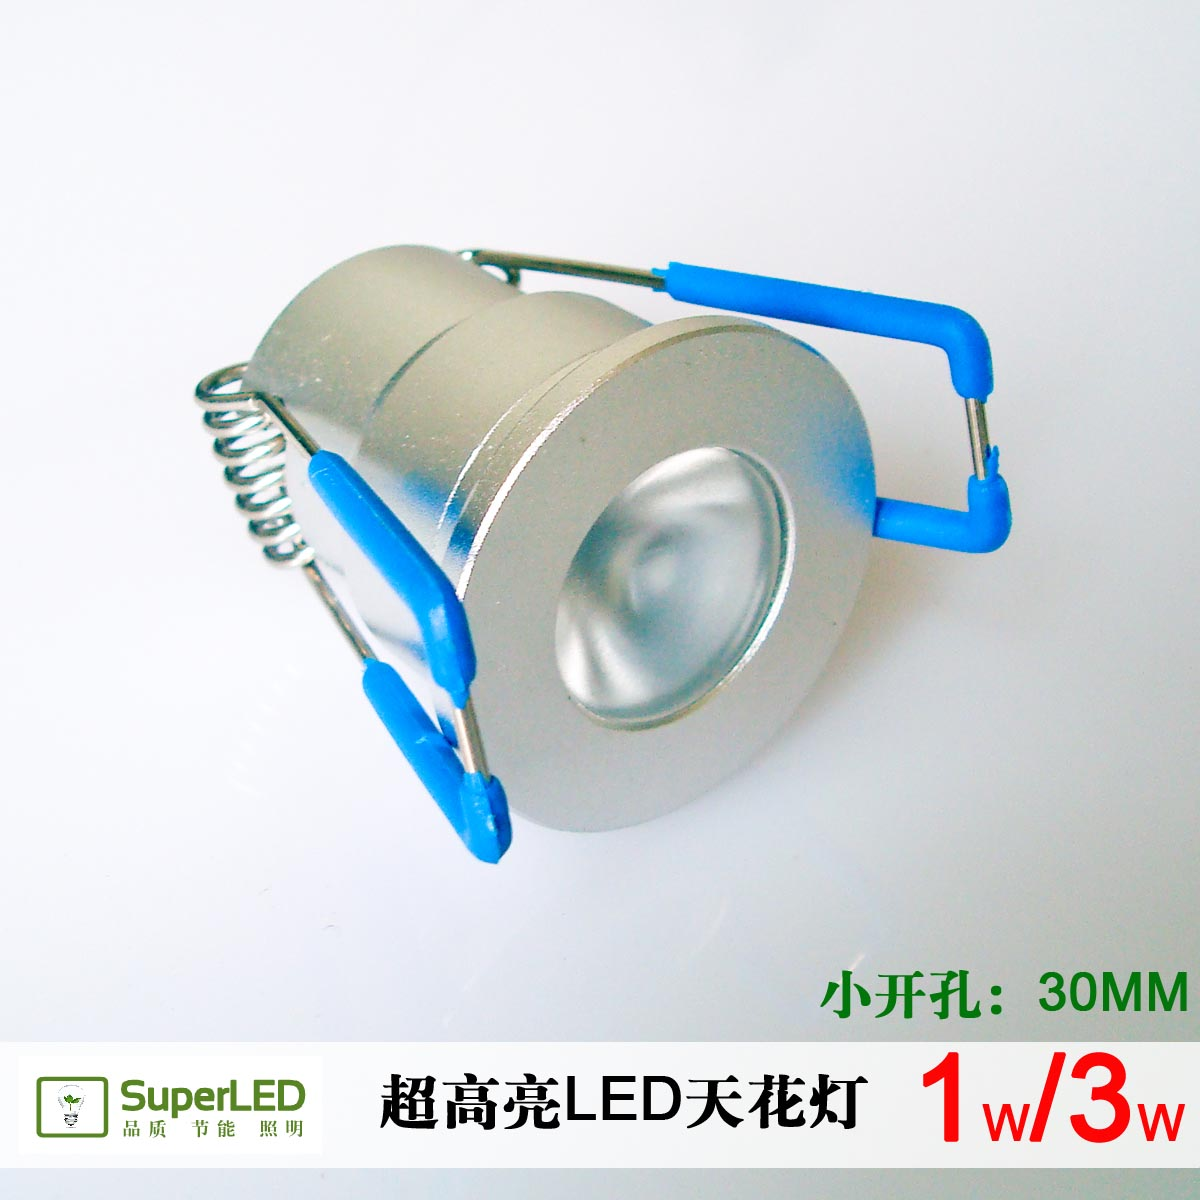 Super-bright-led-ceiling-light-showcase-3w-kitchen-cabinet